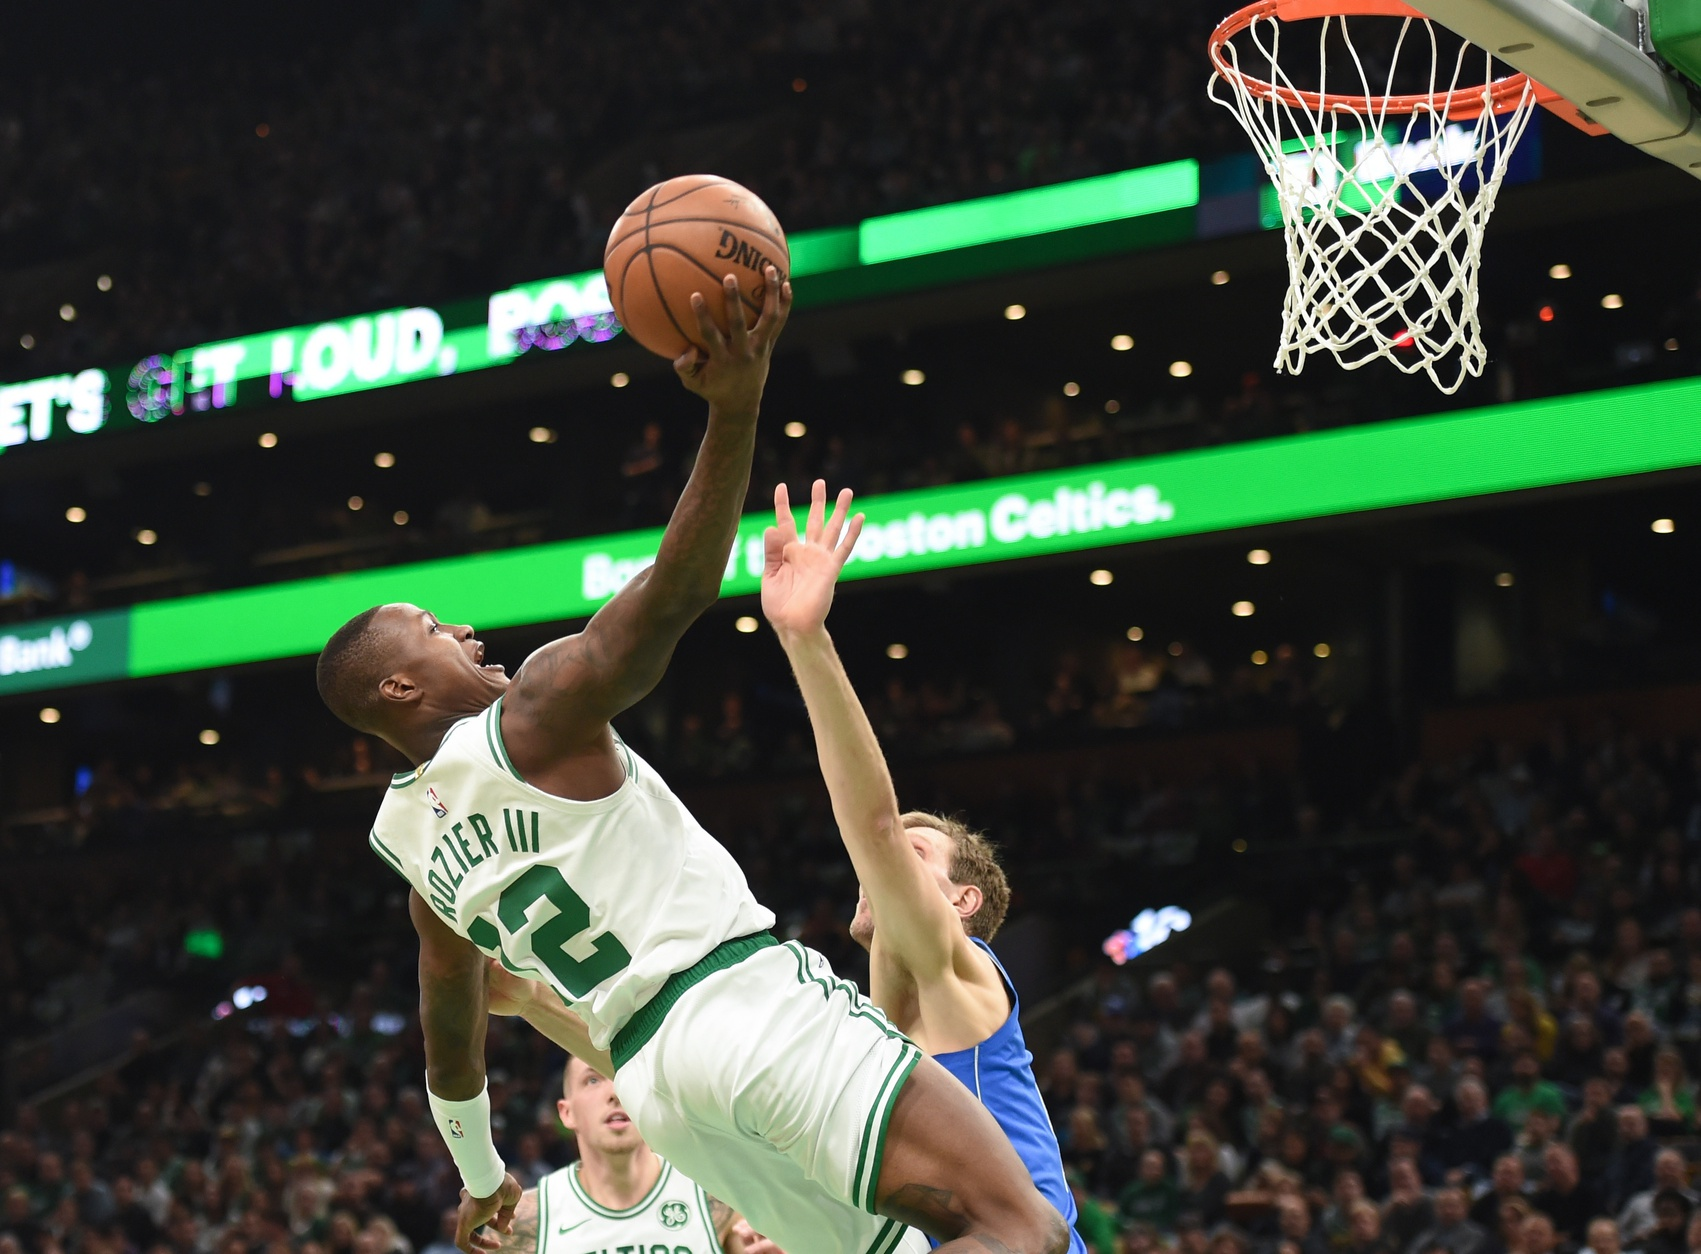 Your Morning Dump... Where Terry Rozier wants the bloggers to know he's happy